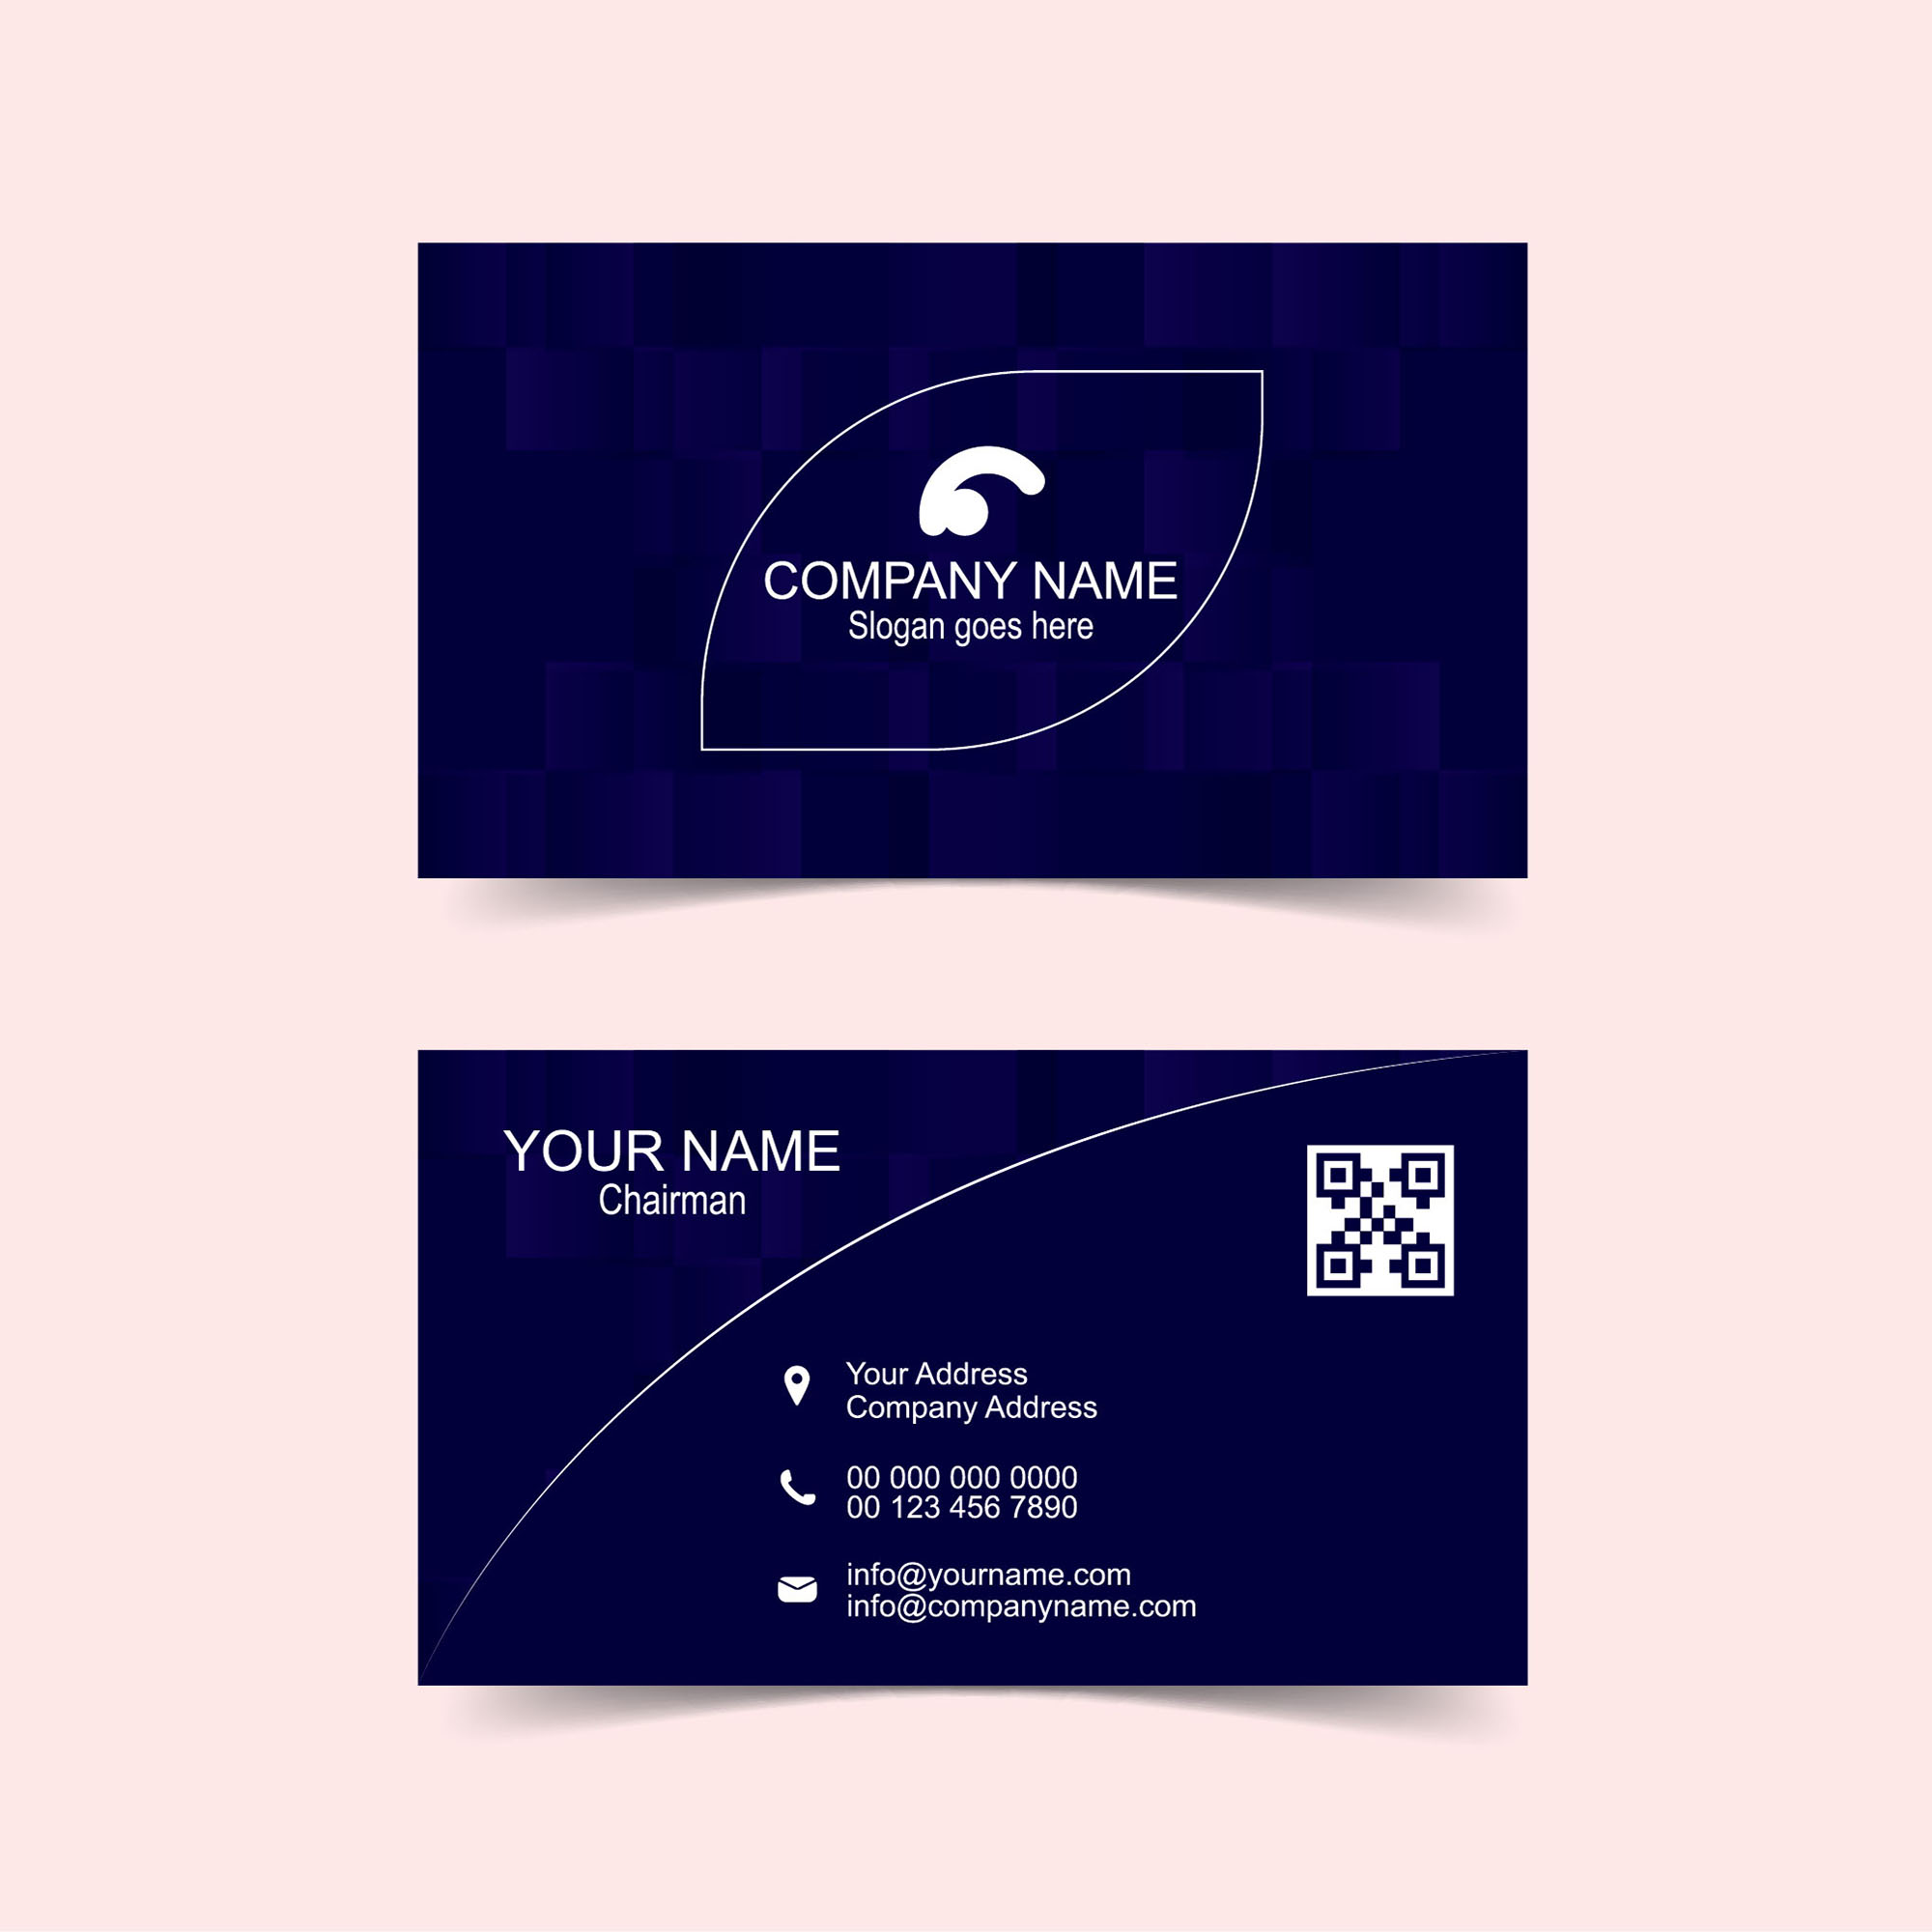 Abstract modern blue business card design wisxi business card business cards business card design business card template design templates cheaphphosting Gallery